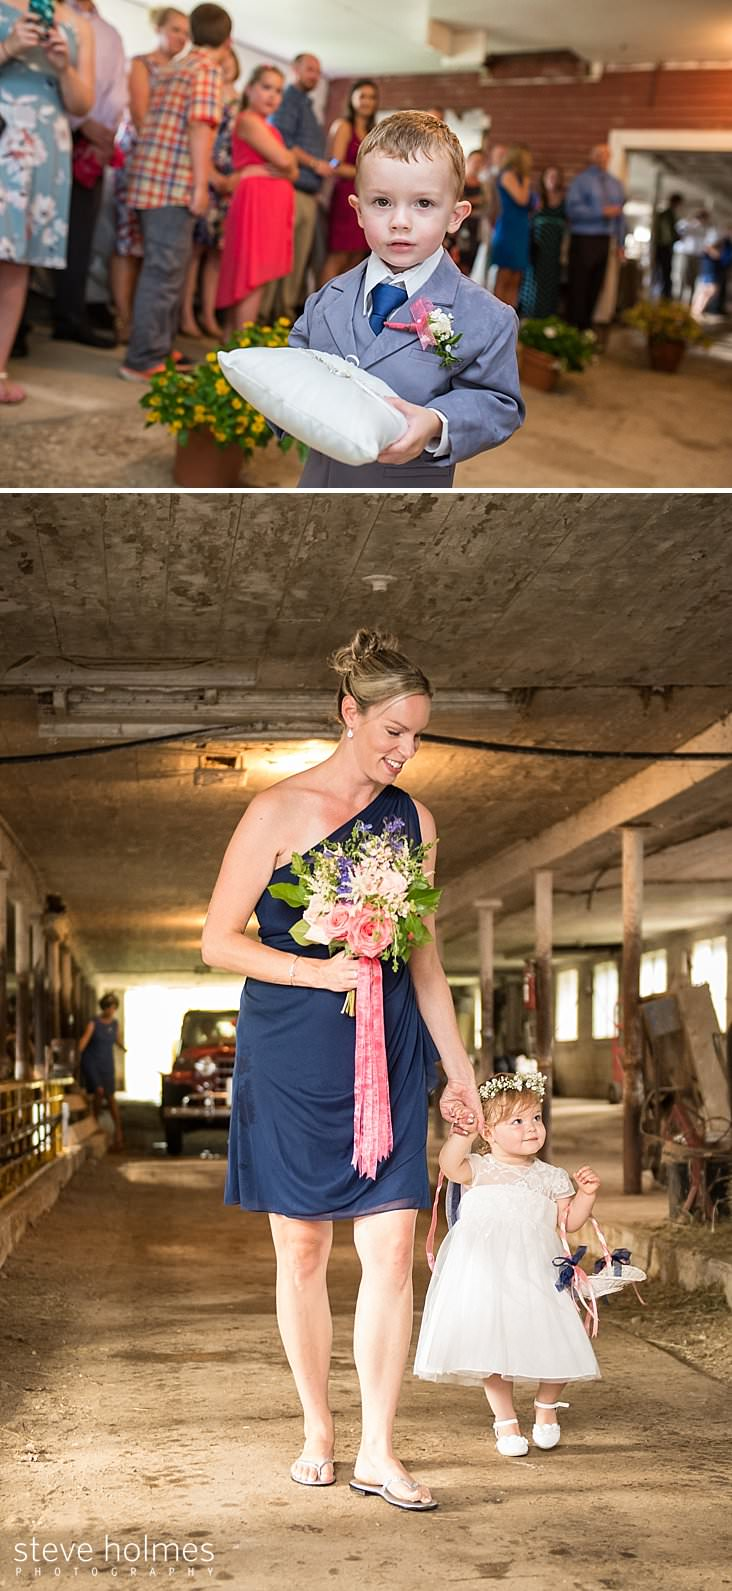 35_Ring bearer stands in barn with wedding guests in the background.jpg